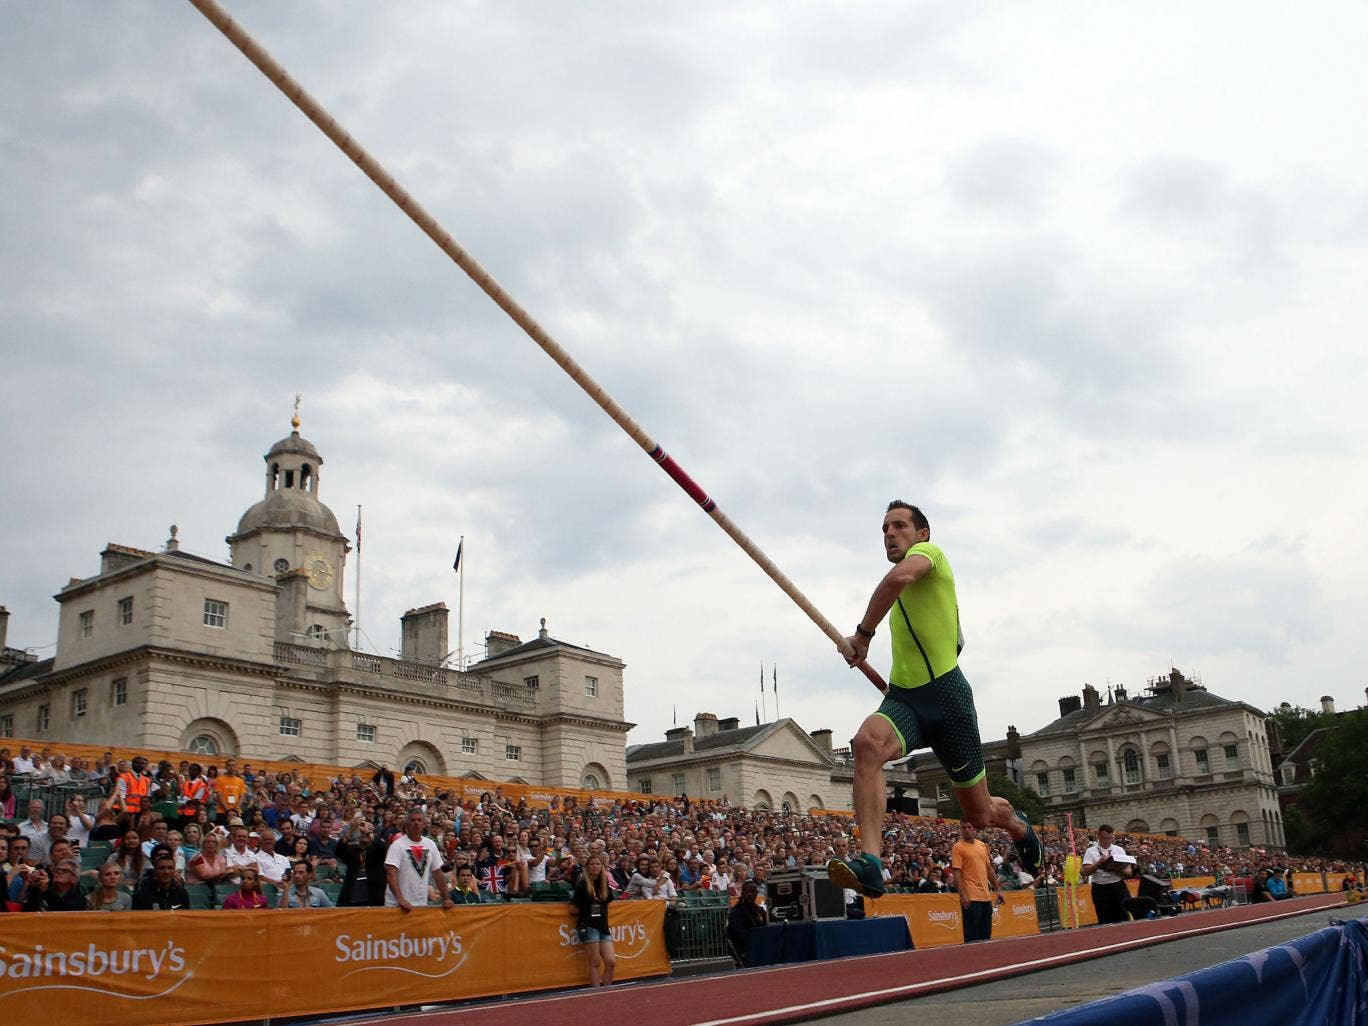 France's Renaud Lavillenie on his way to winning the men's pole vault, during the Anniversary Games at Horse Guards Parade